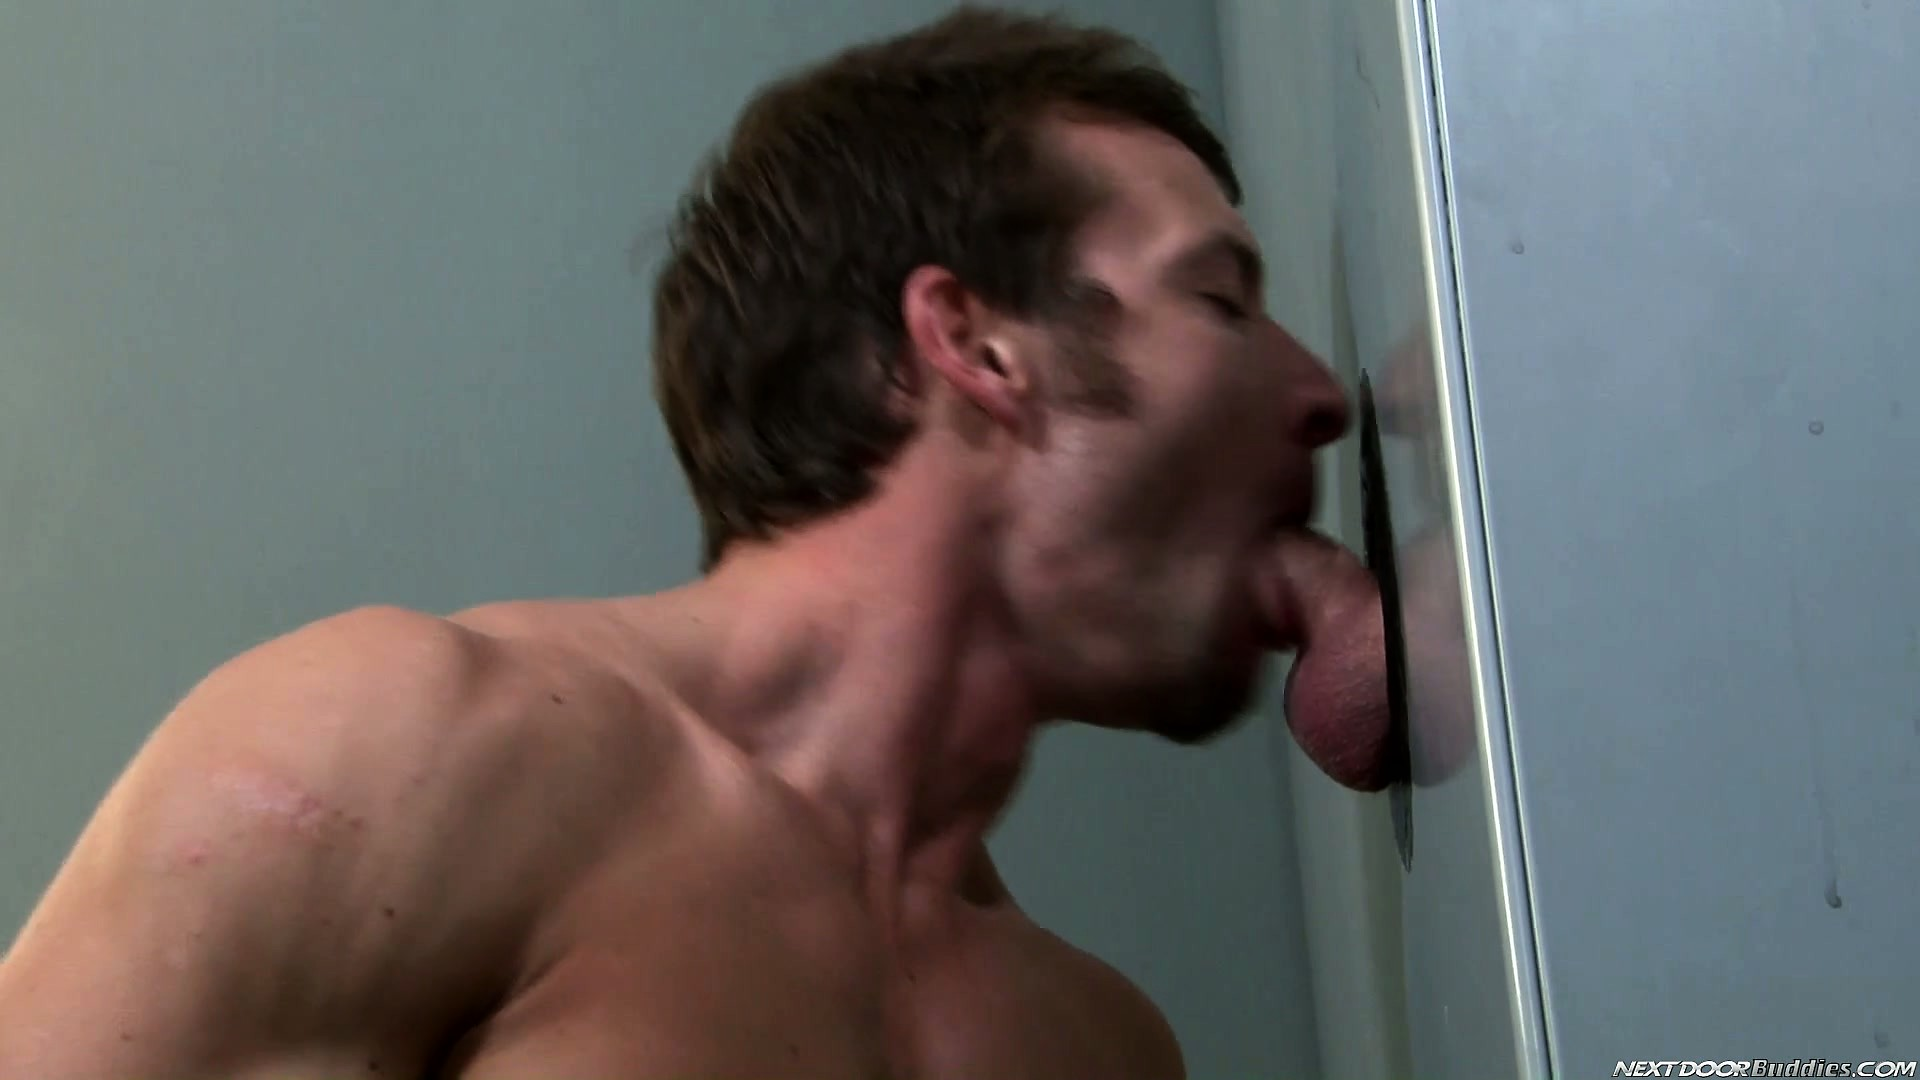 Porno Video of Through A Hole In The Wall A Young Stud Slides A Cock In His Mouth